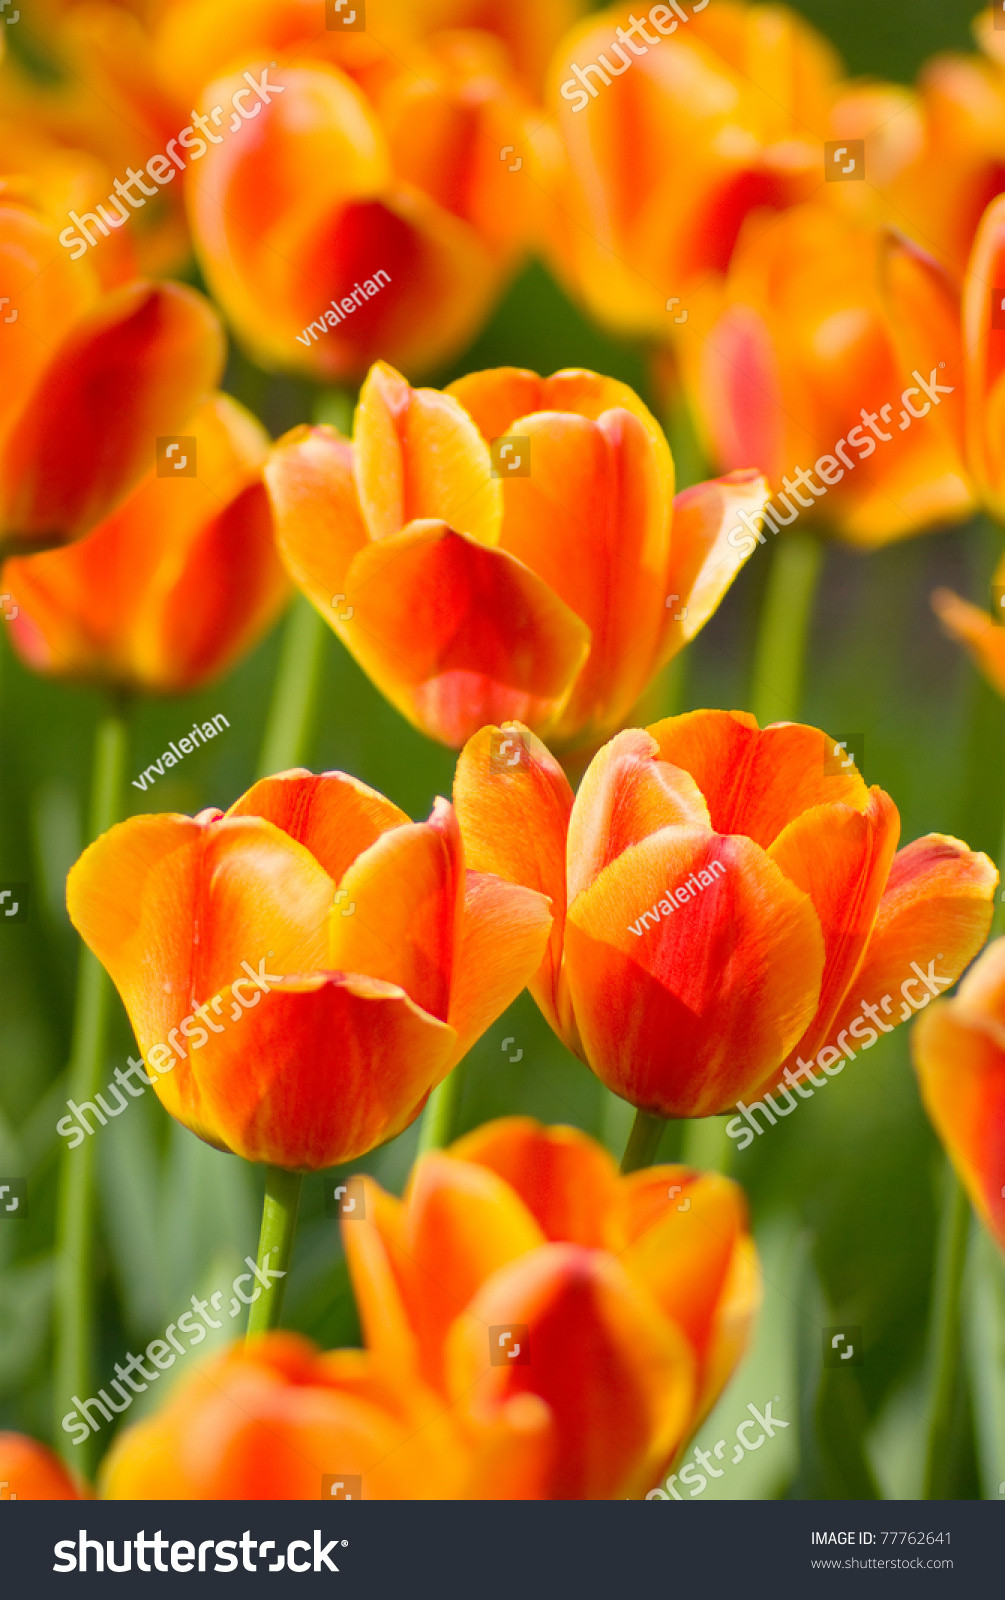 stock photo red orange yellow tulips flower shot from below close up with tulip background pattern